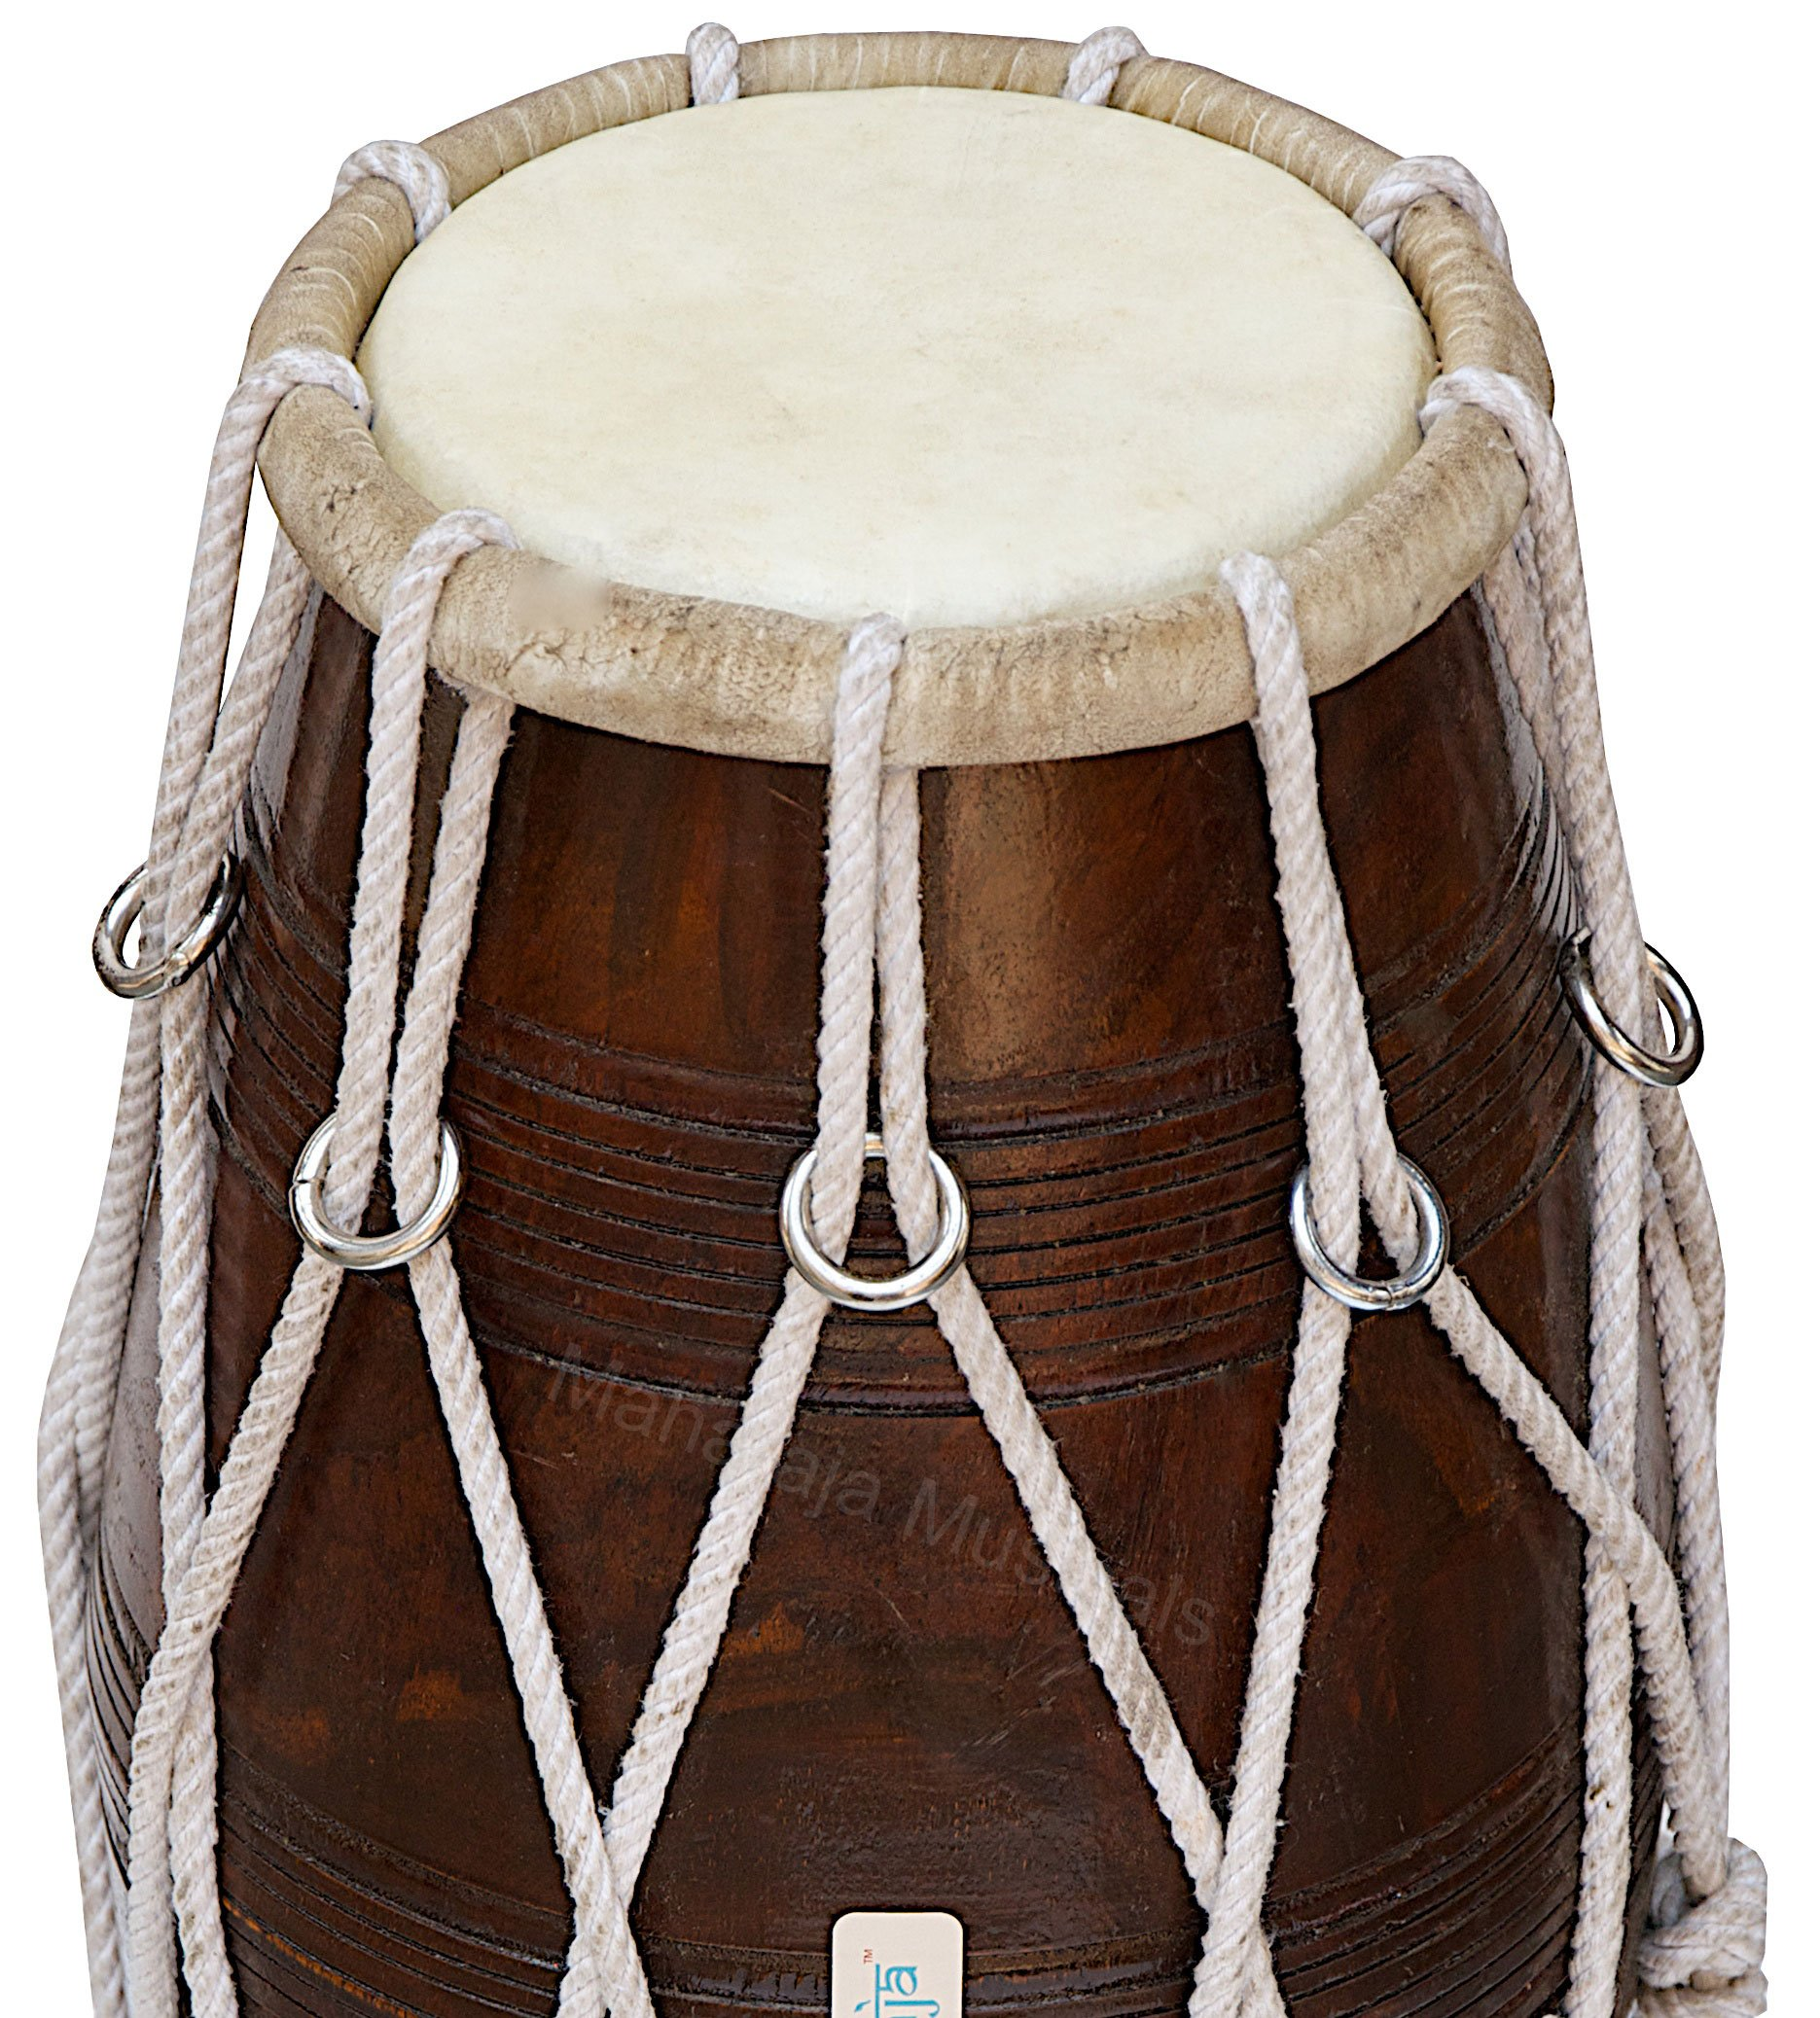 Special Dholak Drum by Maharaja Musicals, Professional Quality, Sheesham Wood, Padded Bag, Spanner, Dholki Musicals Instrument (PDI-BBC) by Maharaja Musicals (Image #4)